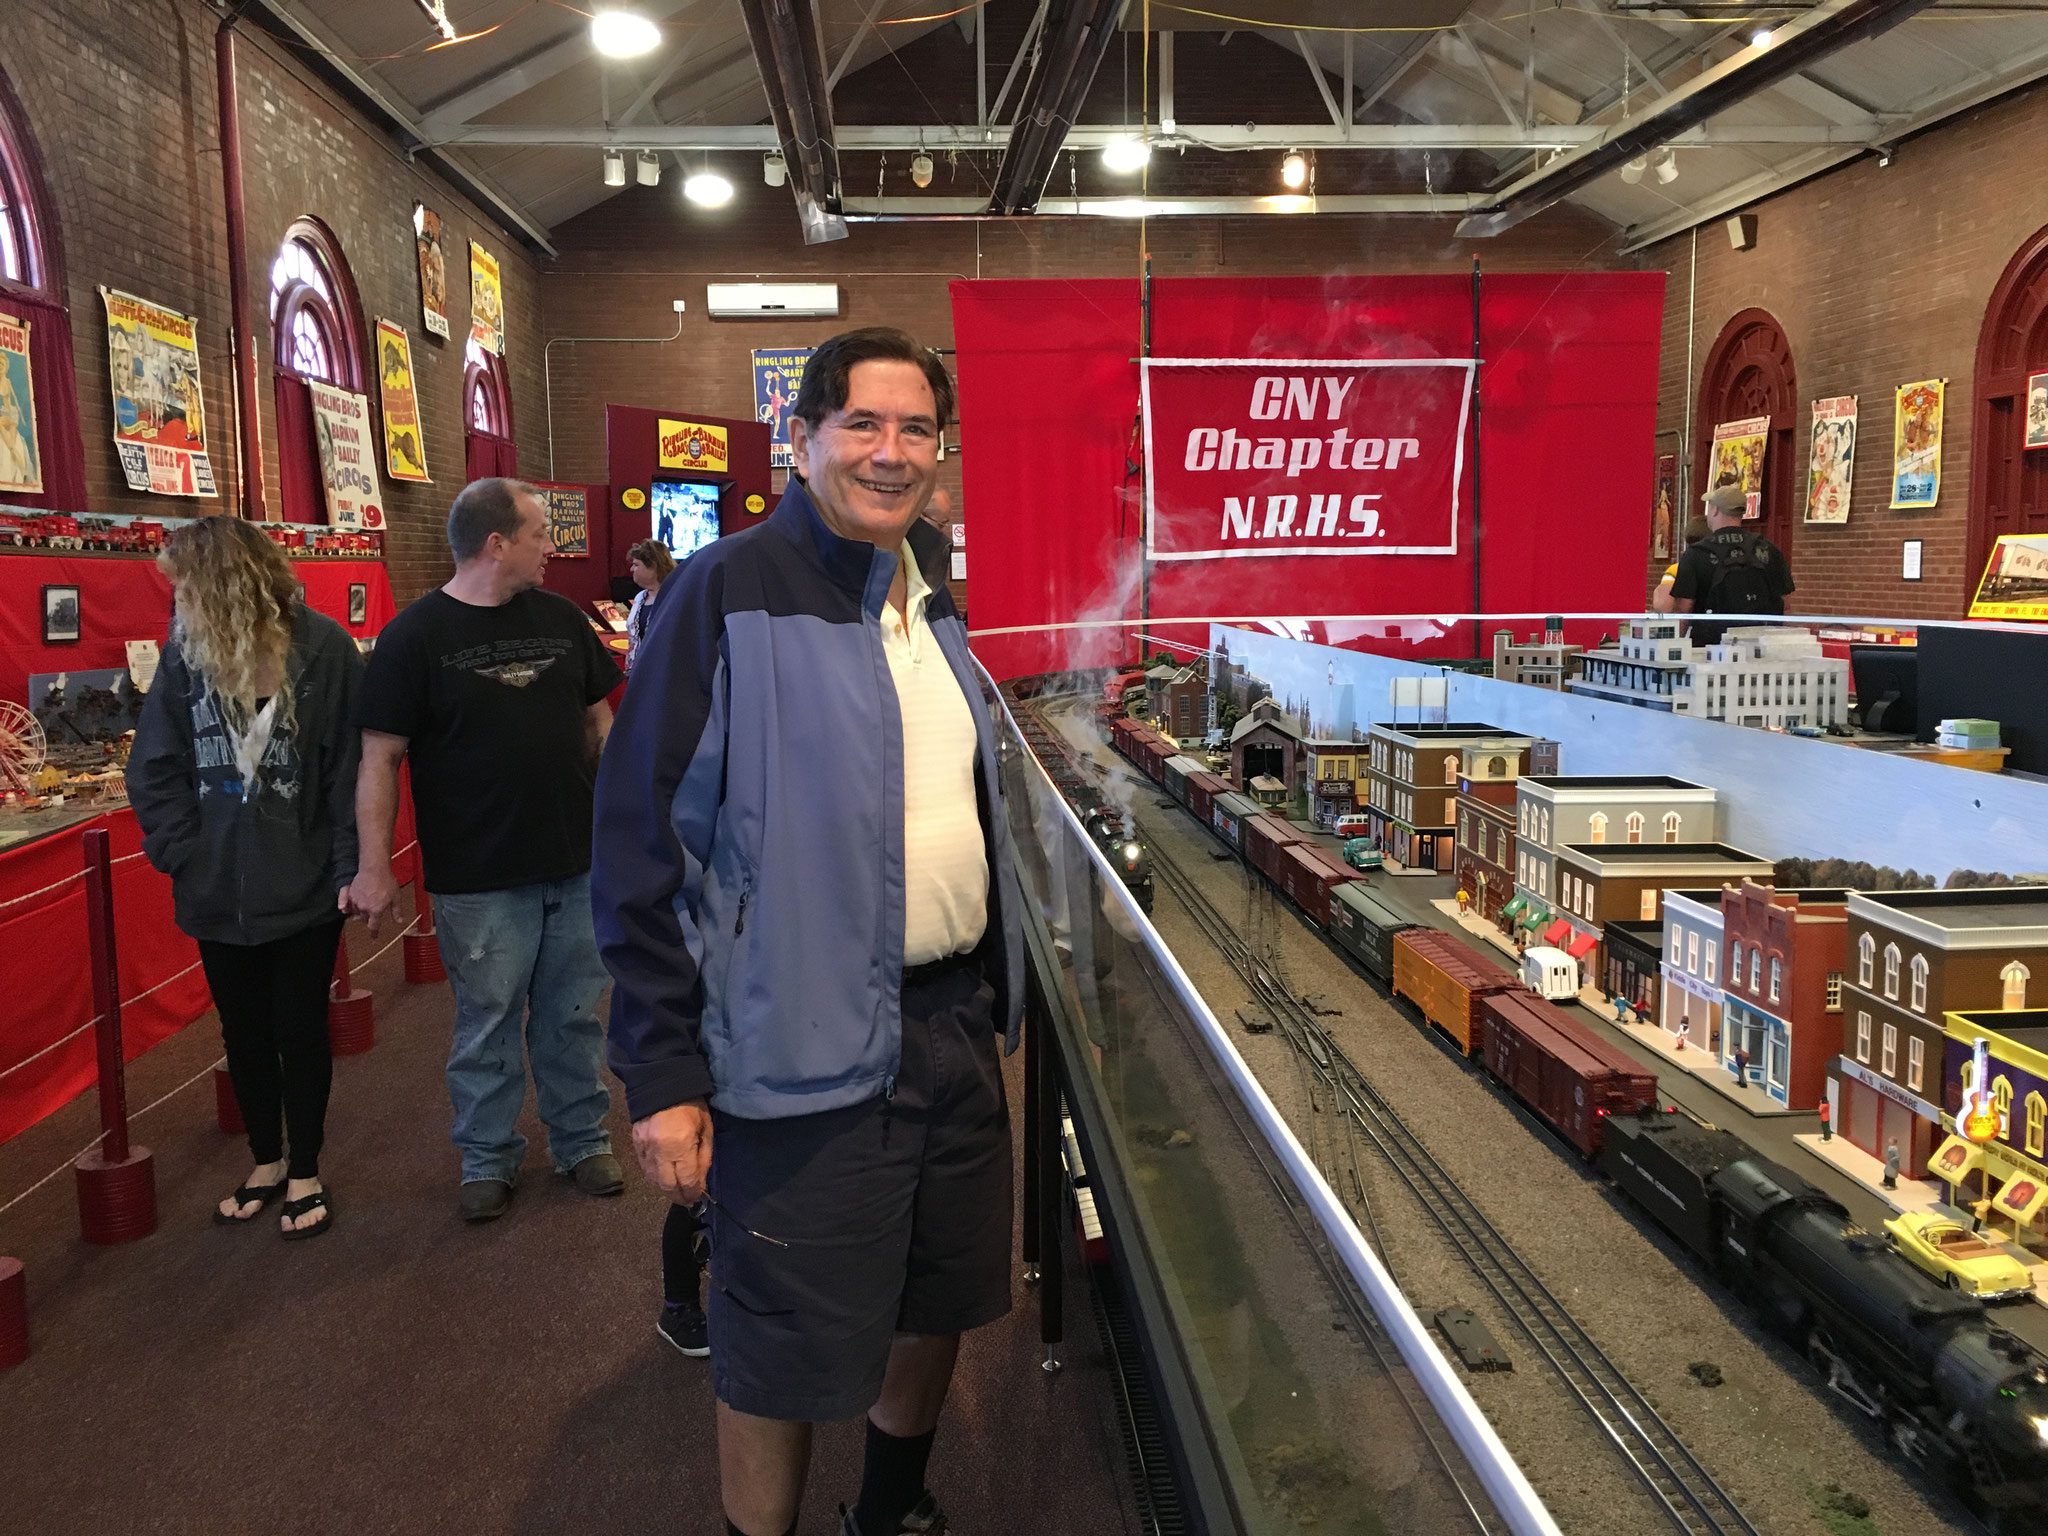 John admires the model trains at the state fair